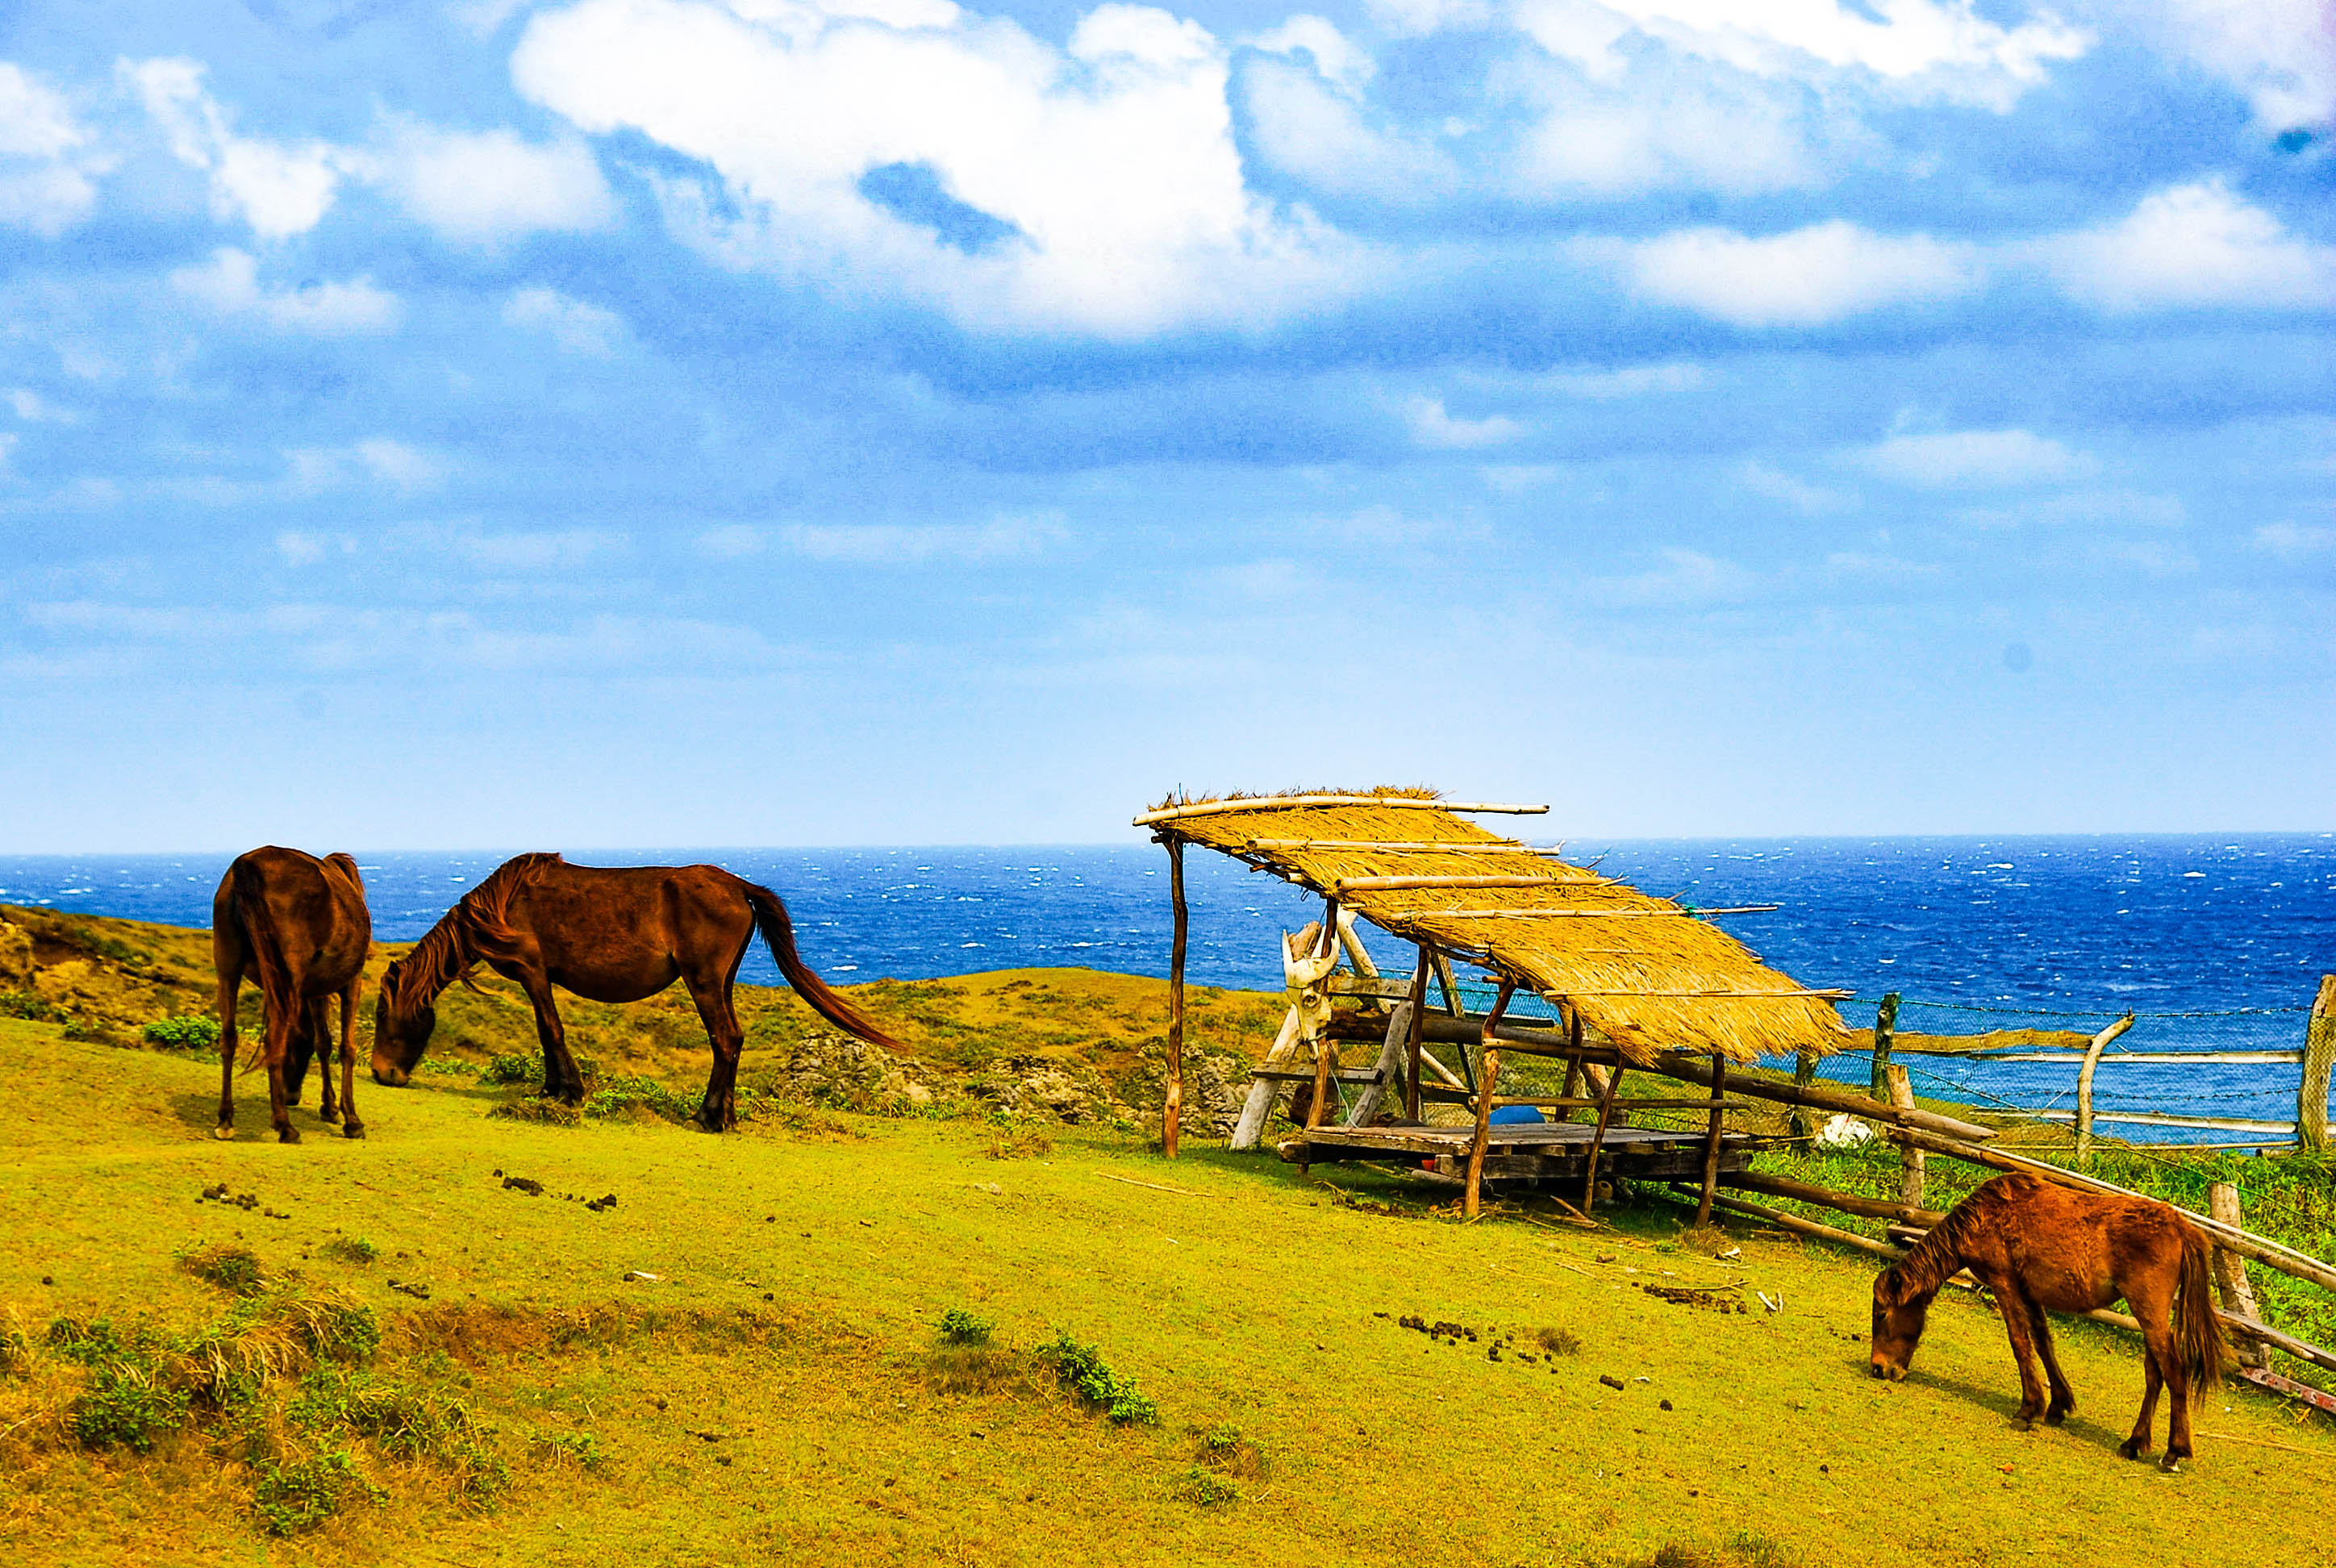 Horses grazing on a hill overlooking the sea in Batanes, Philippines